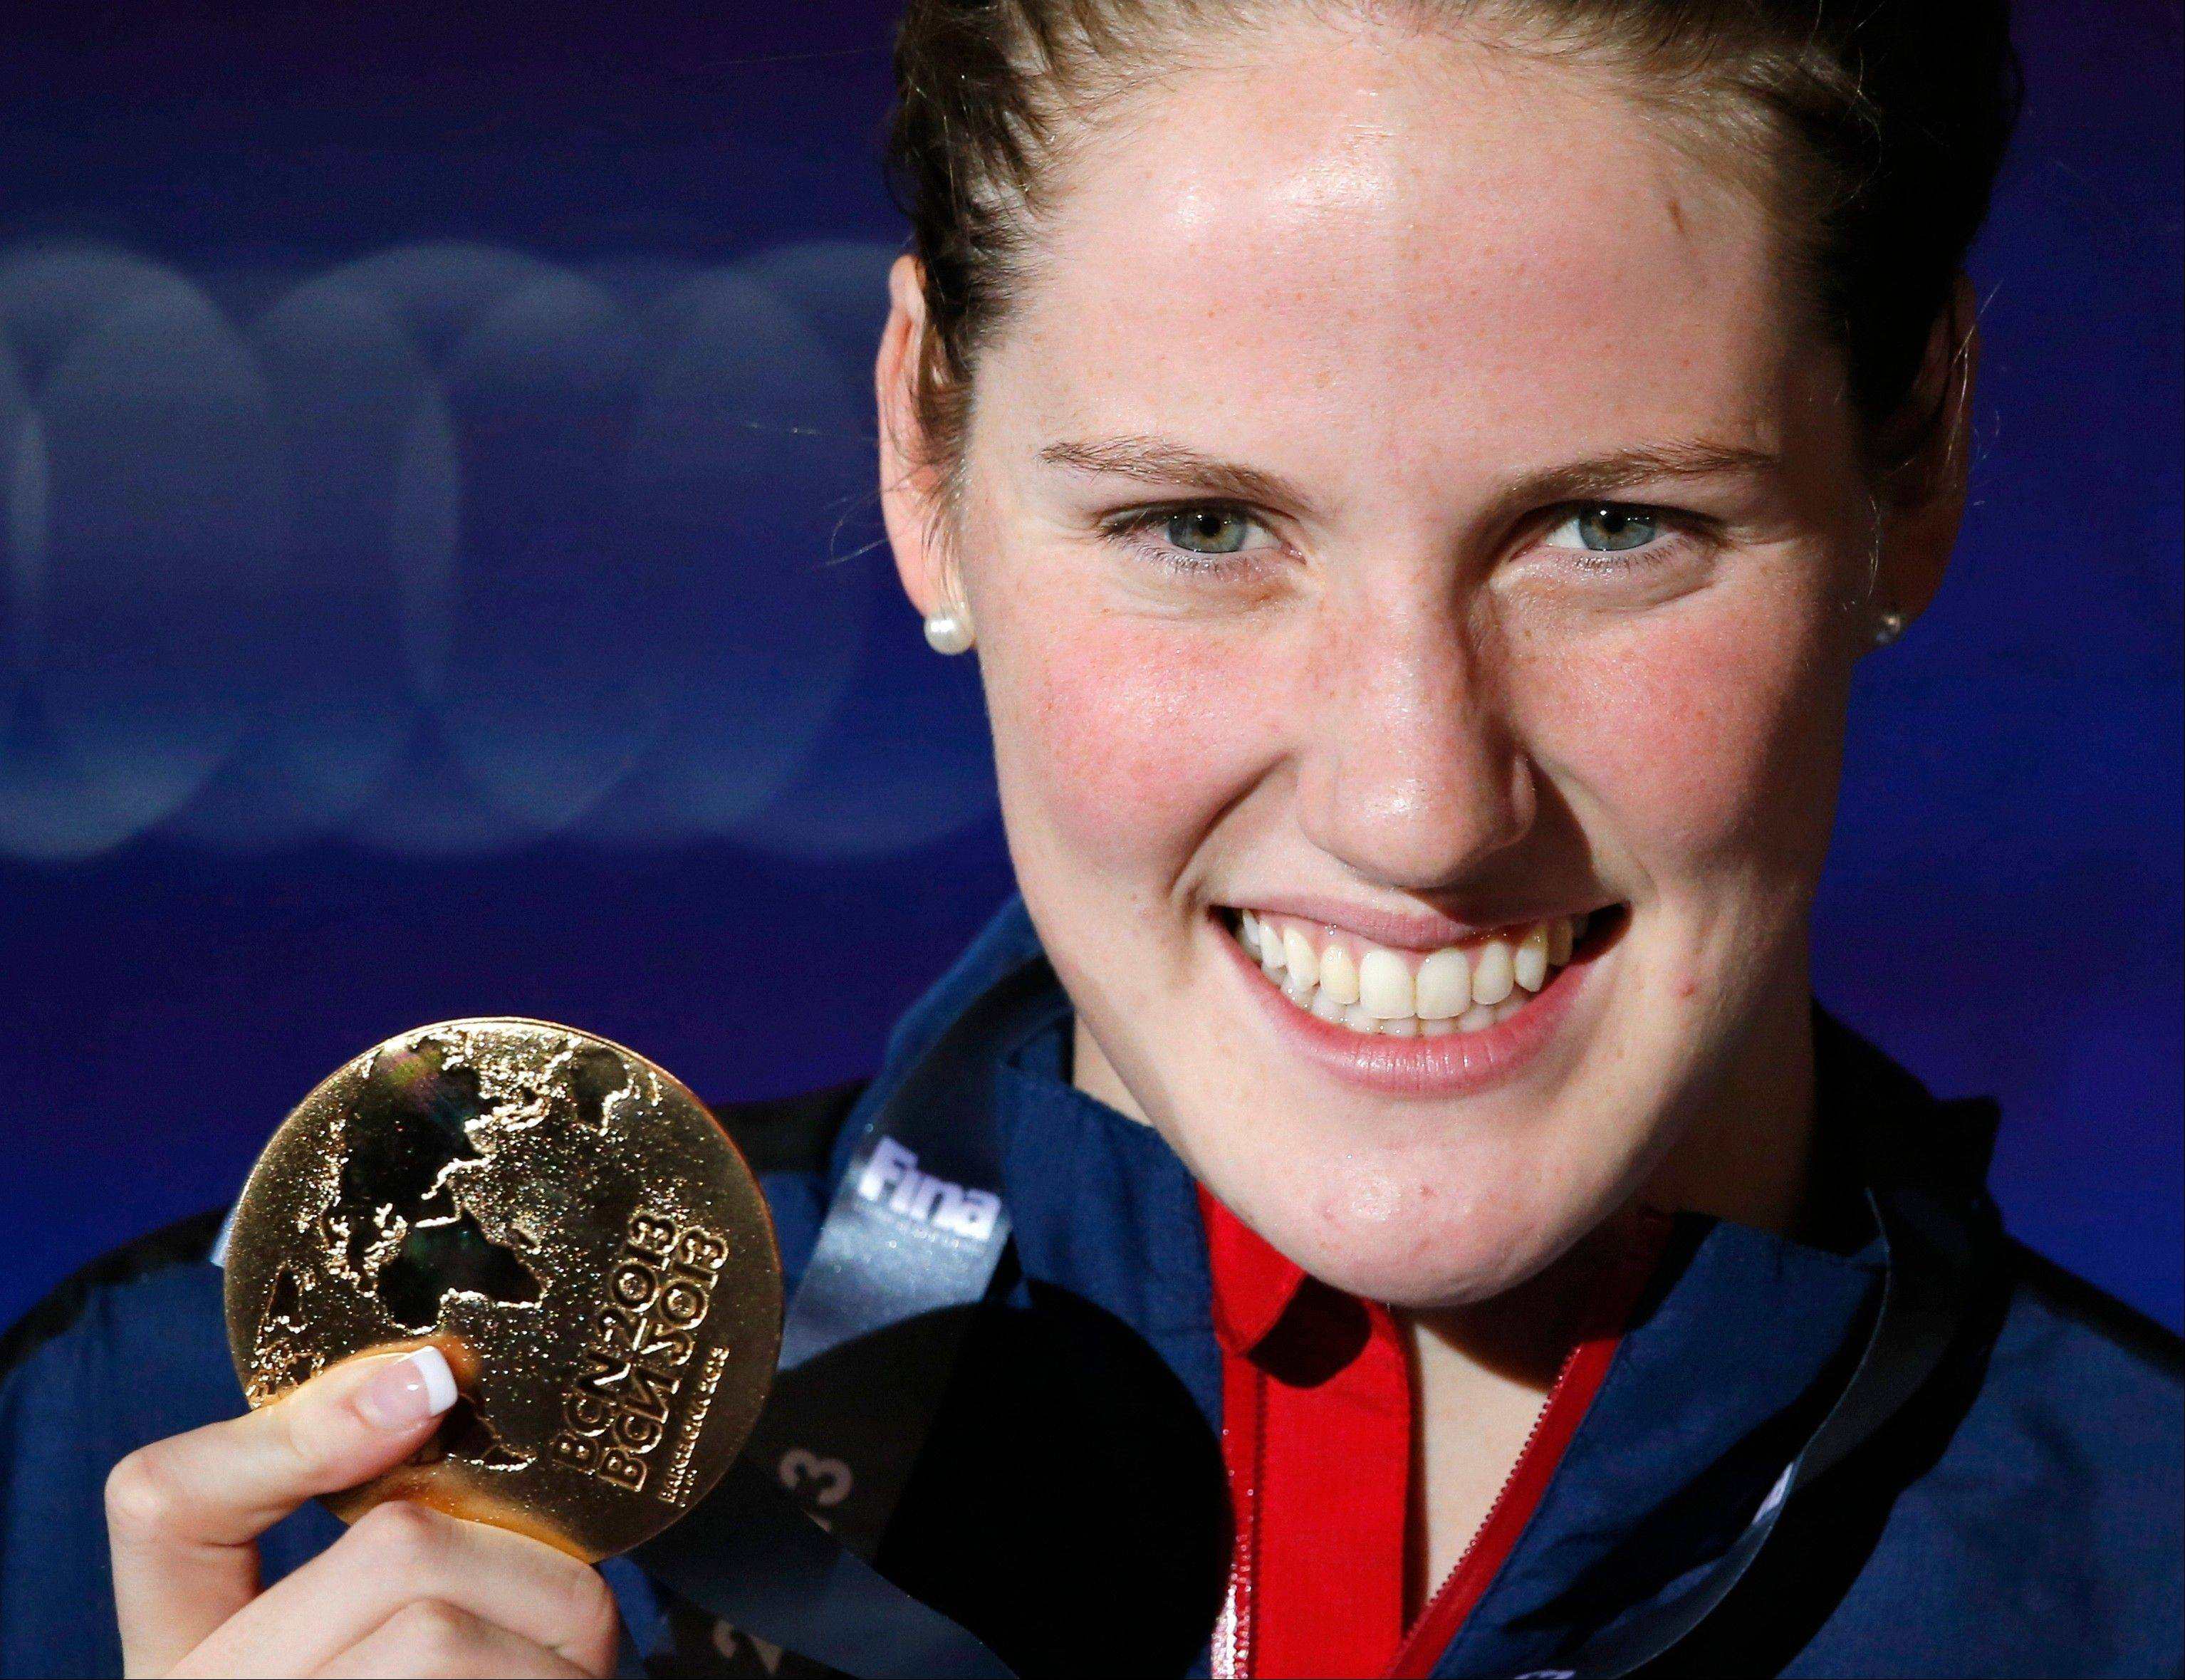 Missy Franklin of the United States smiles as she holds the gold medal she won in the Women's 200m backstroke final at the FINA Swimming World Championships in Barcelona, Spain, Saturday, Aug. 3, 2013.